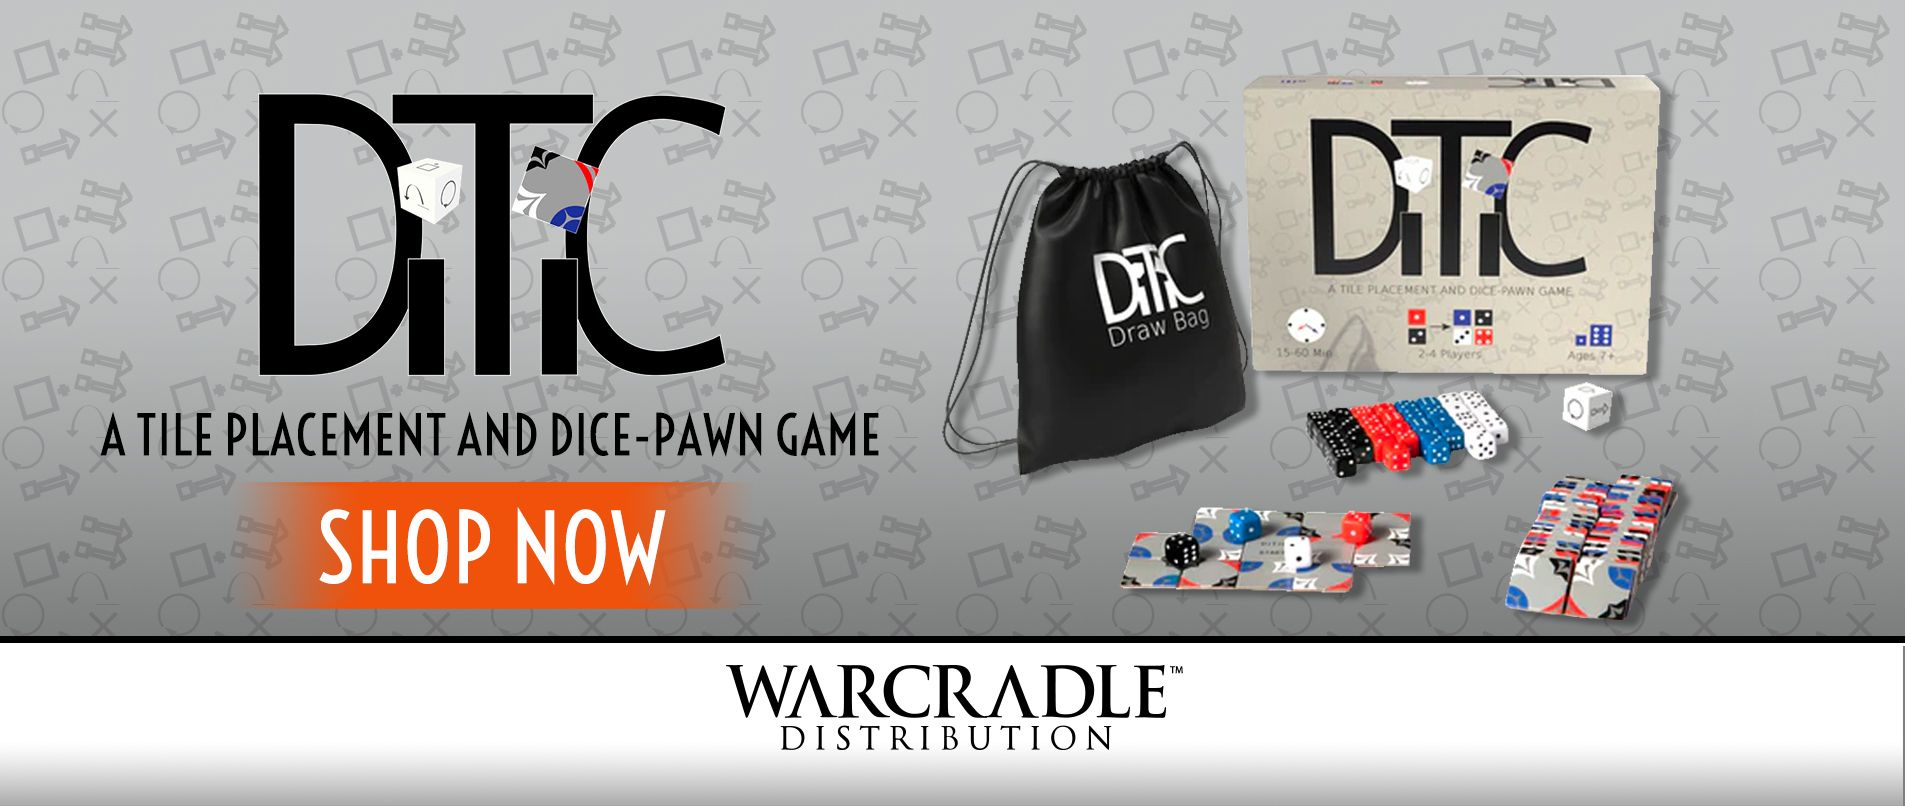 Warcradle Distribution - DiTiC Board Games